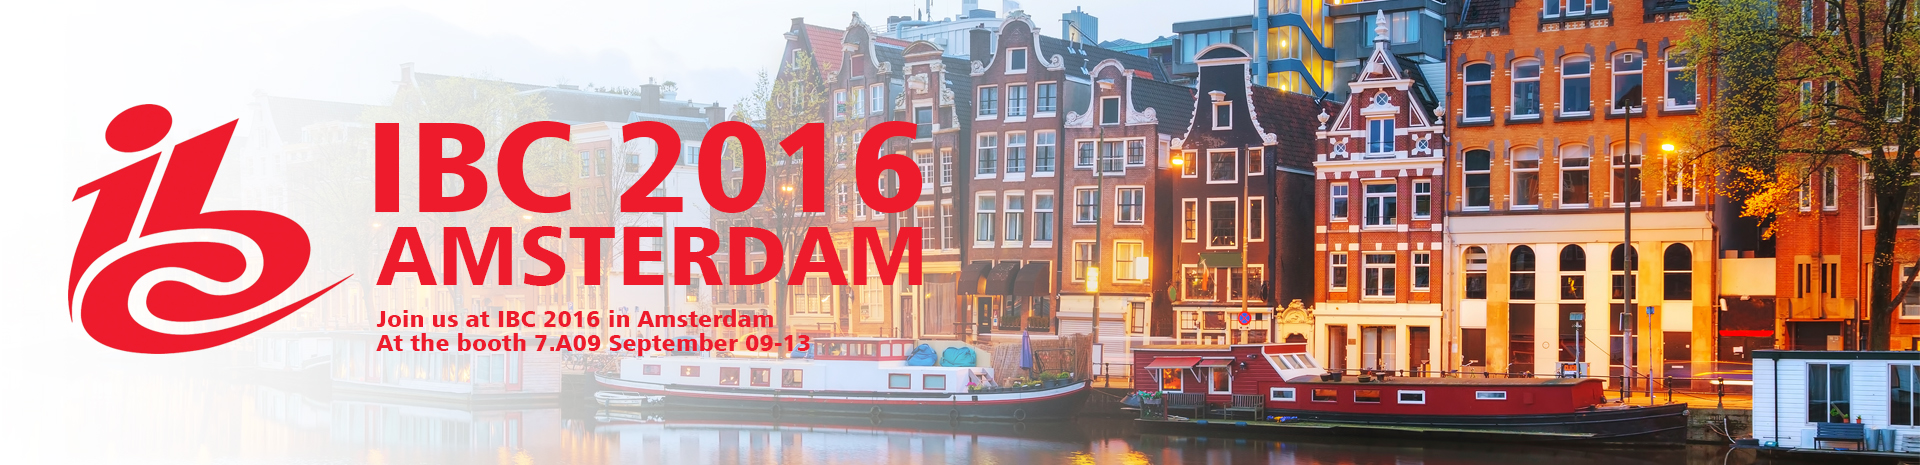 You are Invited to Join METUS at IBC Sep.09-13 2016 Amsterdam RAI